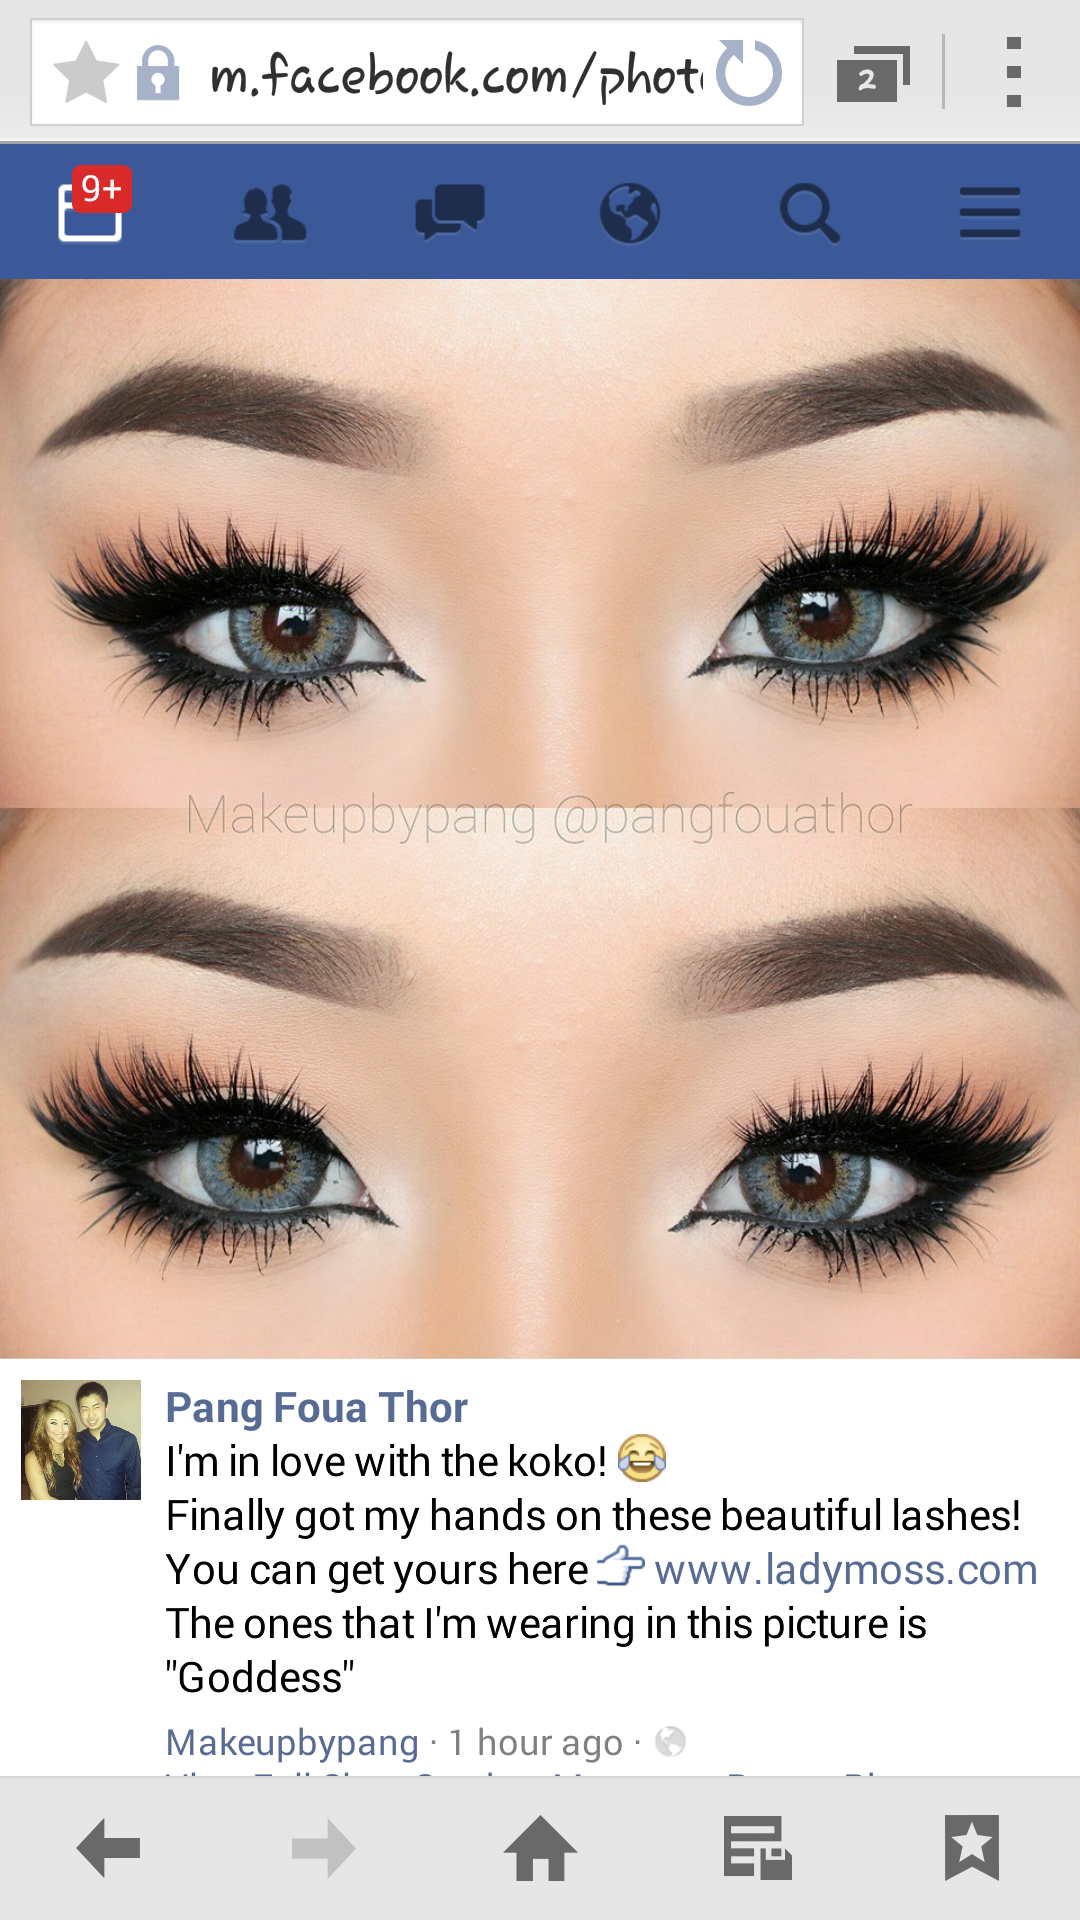 36317445a21 Koko Lashes in Goddess Pang Foua Thor | Make-ups: House of Lash ...